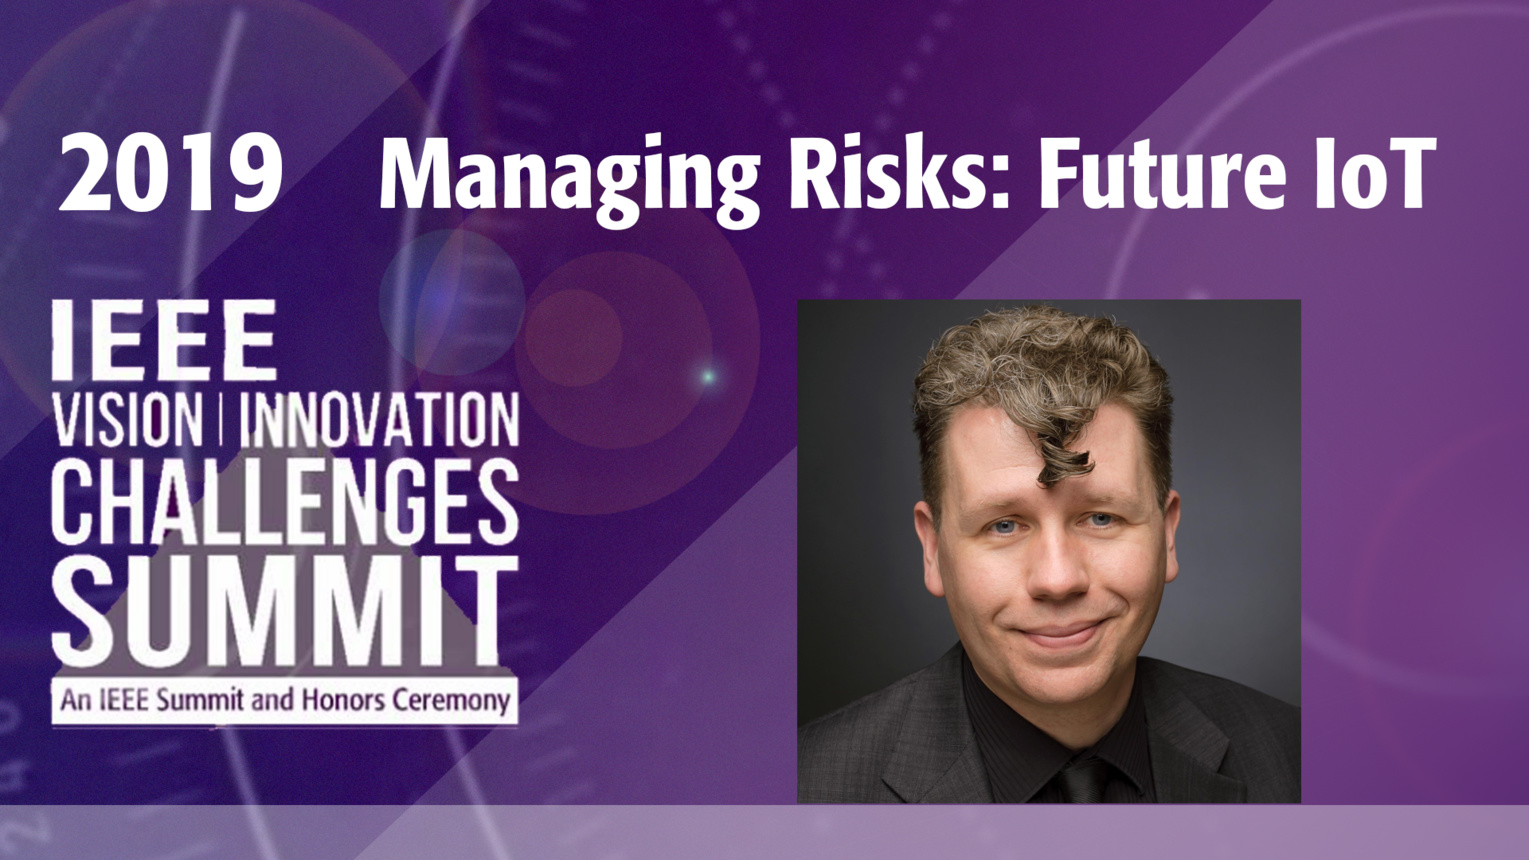 Managing Risks of the Future IoT - Kayne McGladrey - VIC Summit 2019